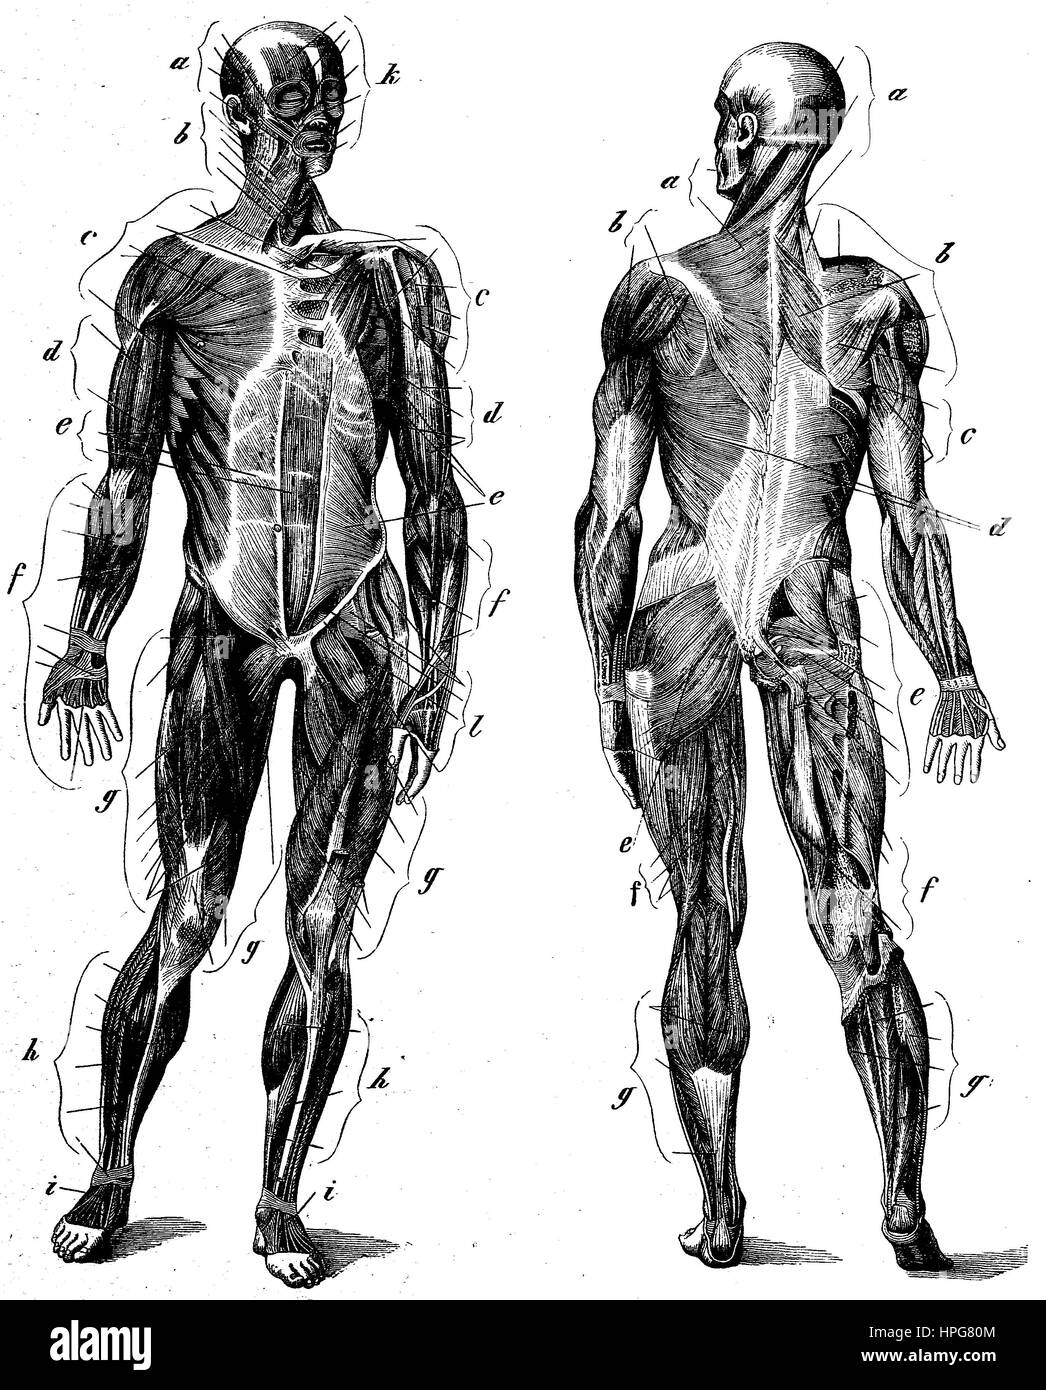 Muscular System Black and White Stock Photos & Images - Alamy